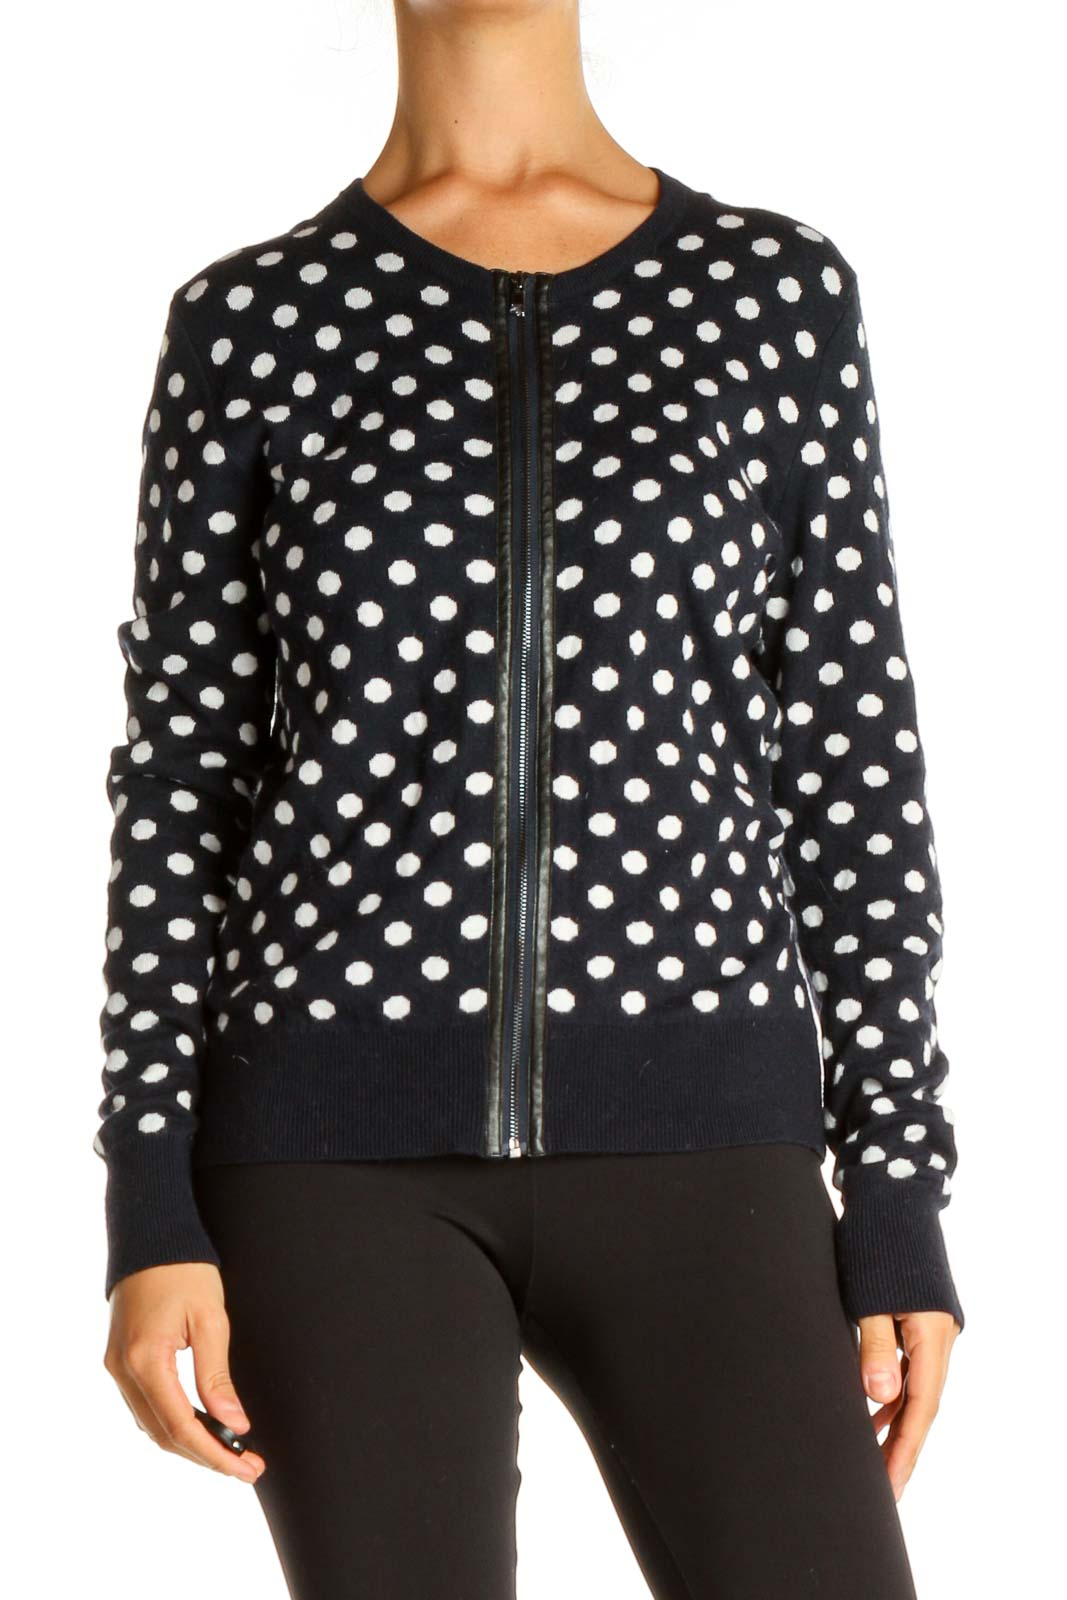 Blue Polka Dot All Day Wear Sweater Front